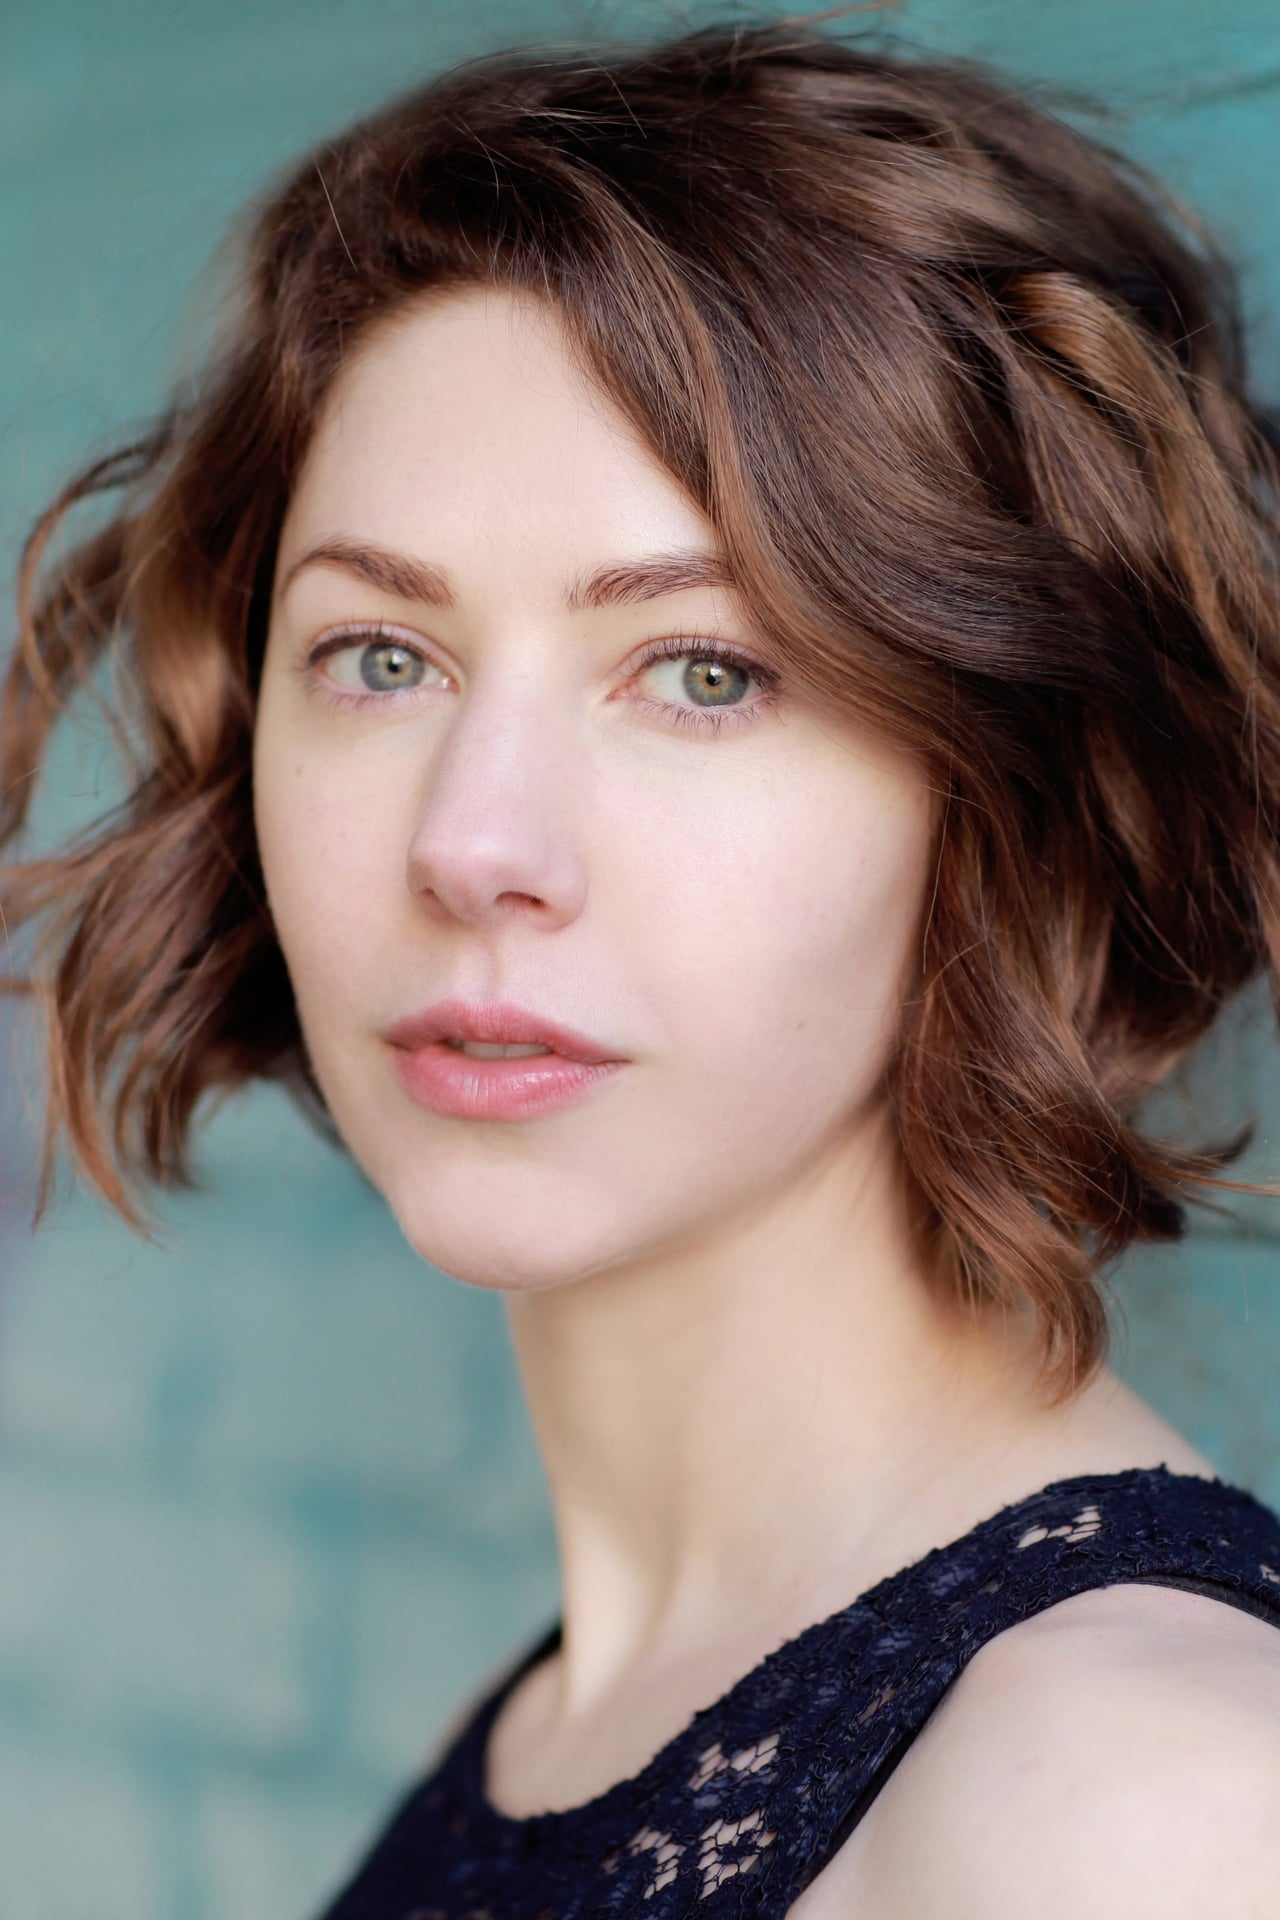 Catherine Steadman is